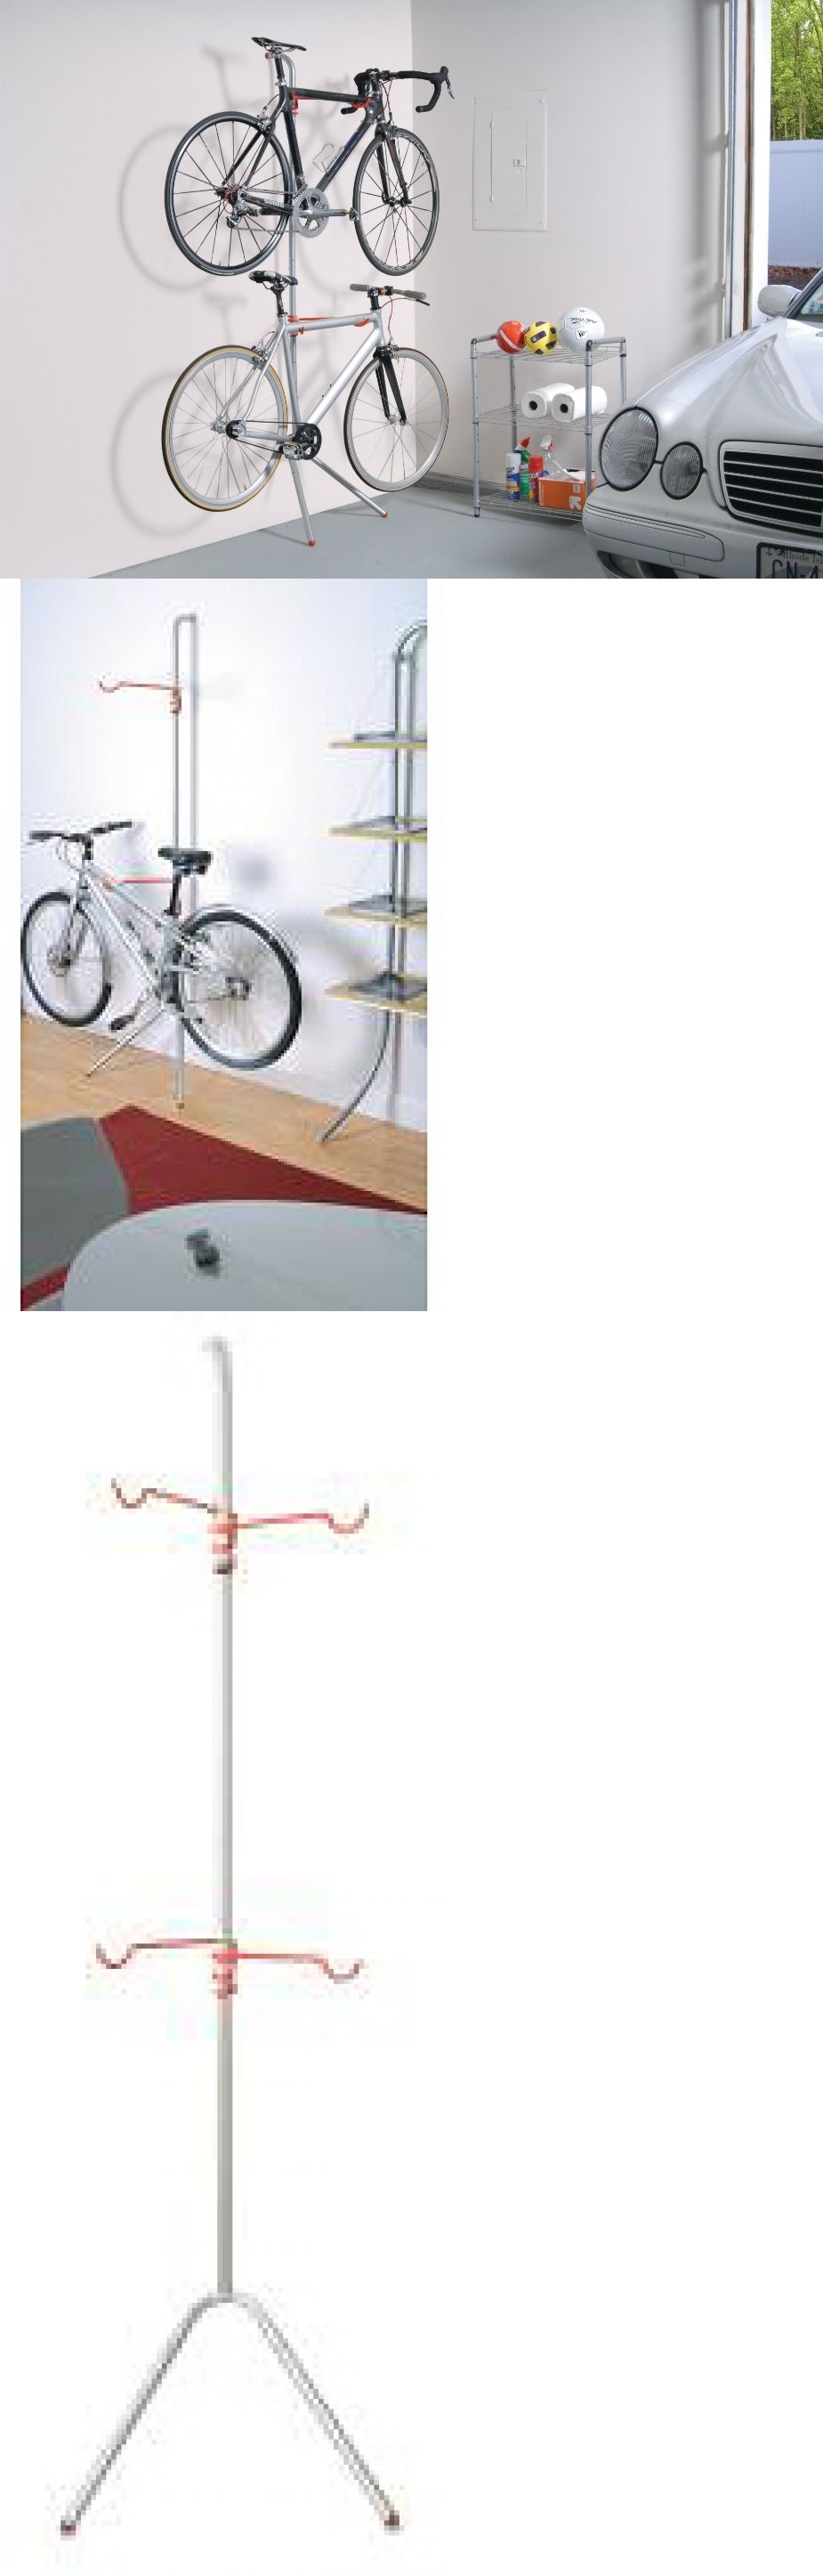 Bicycle Stands and Storage 158997: Bike Rack Storage Racks For Garage Apartment House 2 Bicycles Bikes Bicycle New -> BUY IT NOW ONLY: $74.5 on eBay!